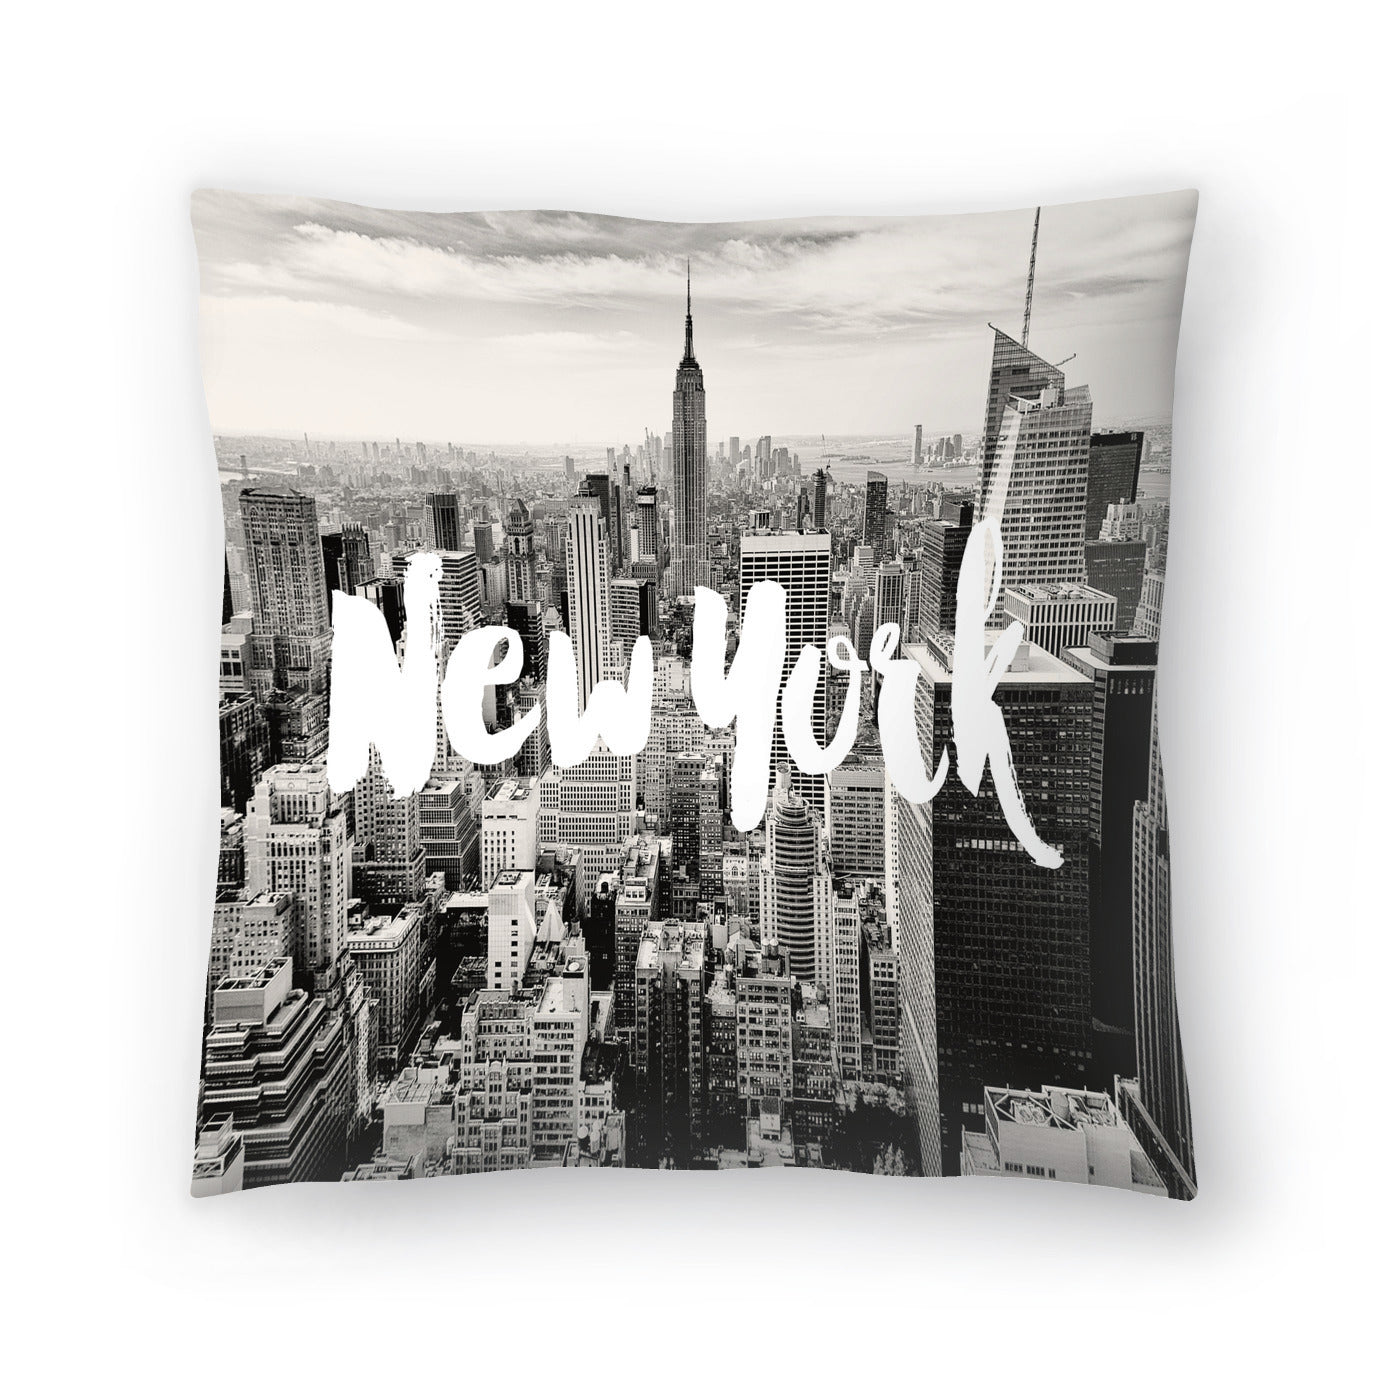 New York Skyline White by Amy Brinkman Decorative Pillow - Decorative Pillow - Americanflat